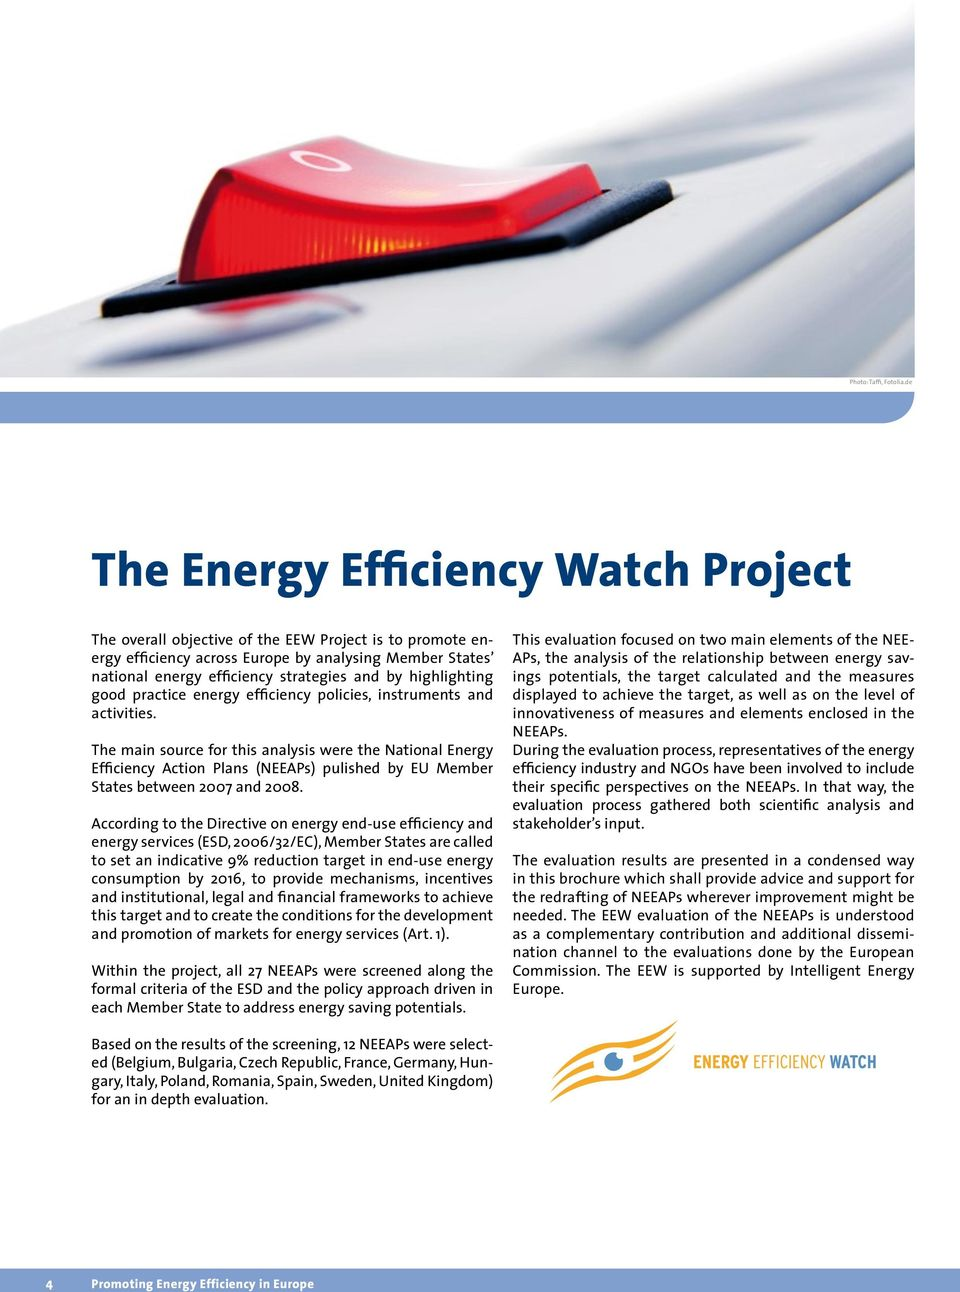 highlighting good practice energy efficiency policies, instruments and activities.